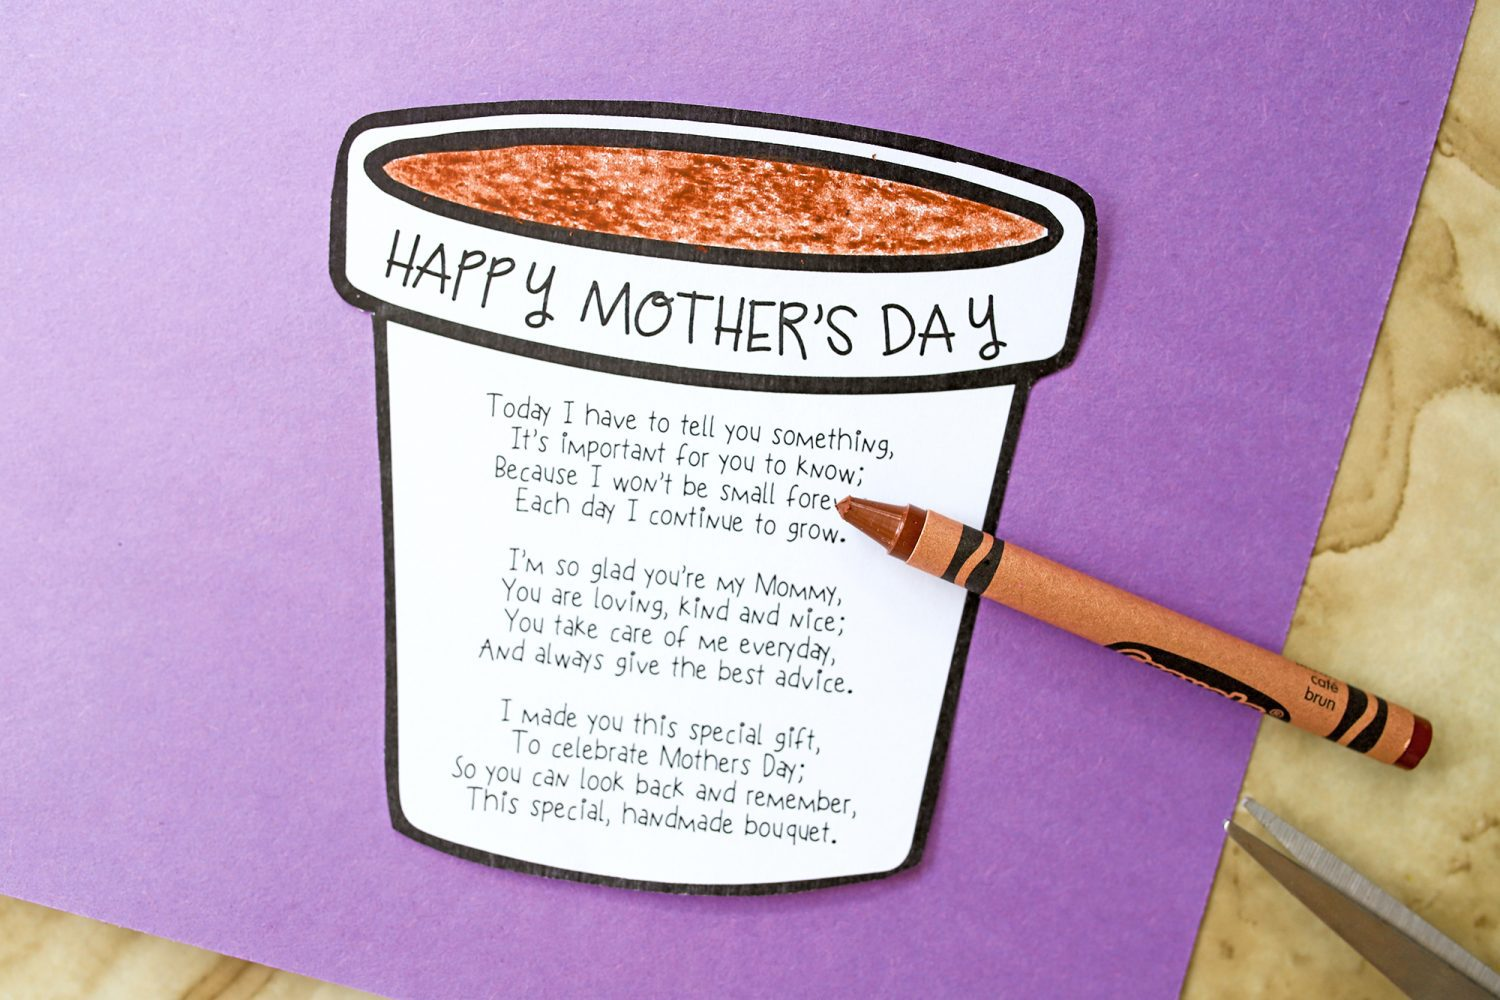 Happy Mother's Day poem and a crayon